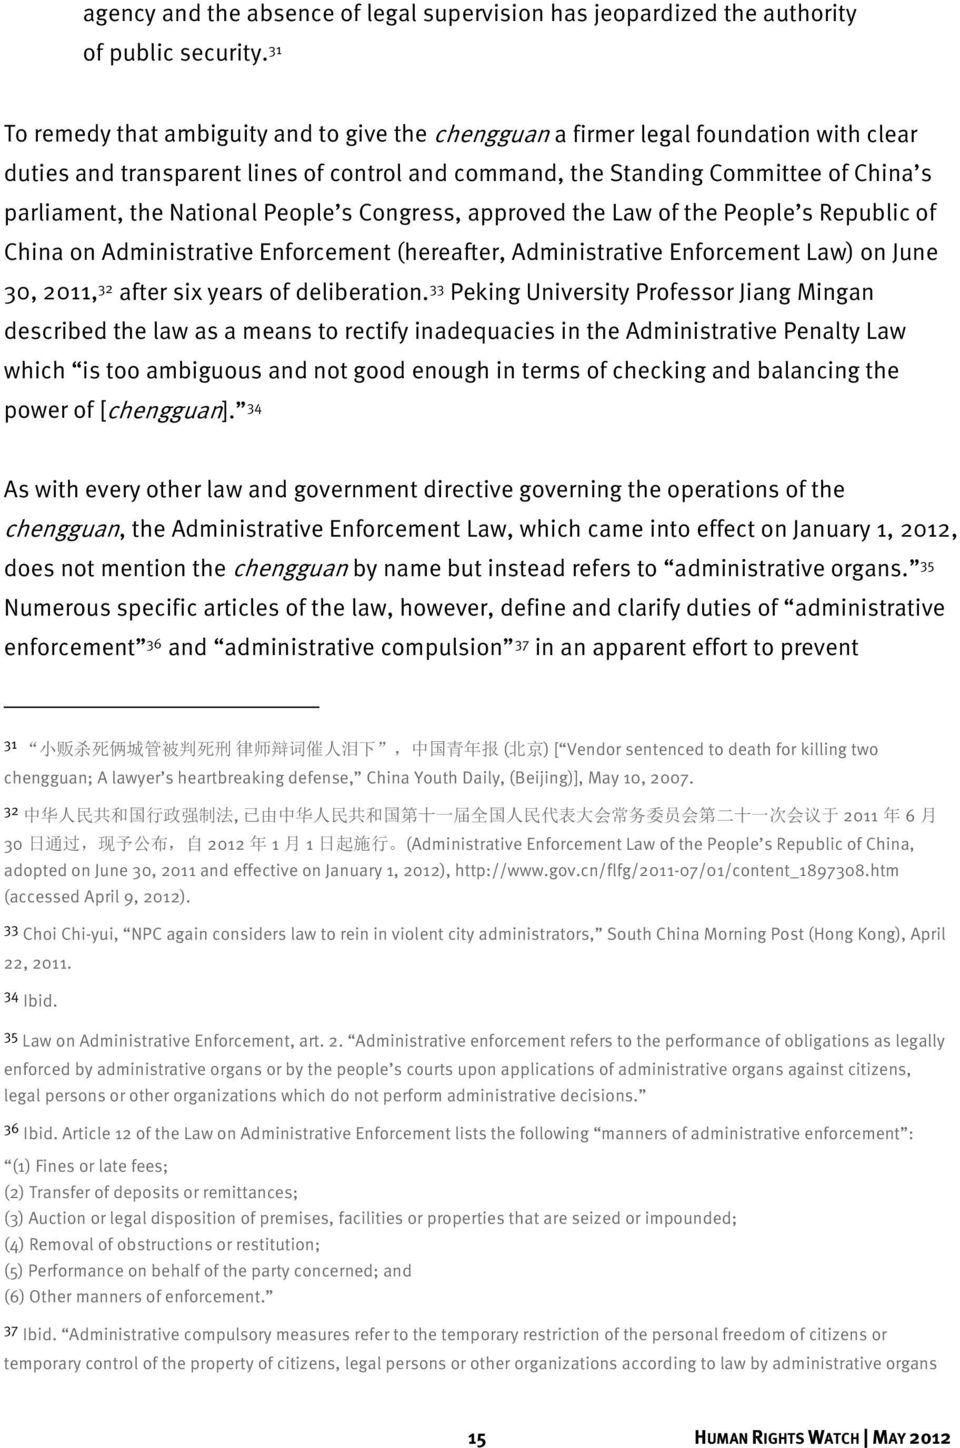 National People s Congress, approved the Law of the People s Republic of China on Administrative Enforcement (hereafter, Administrative Enforcement Law) on June 30, 2011, 32 after six years of